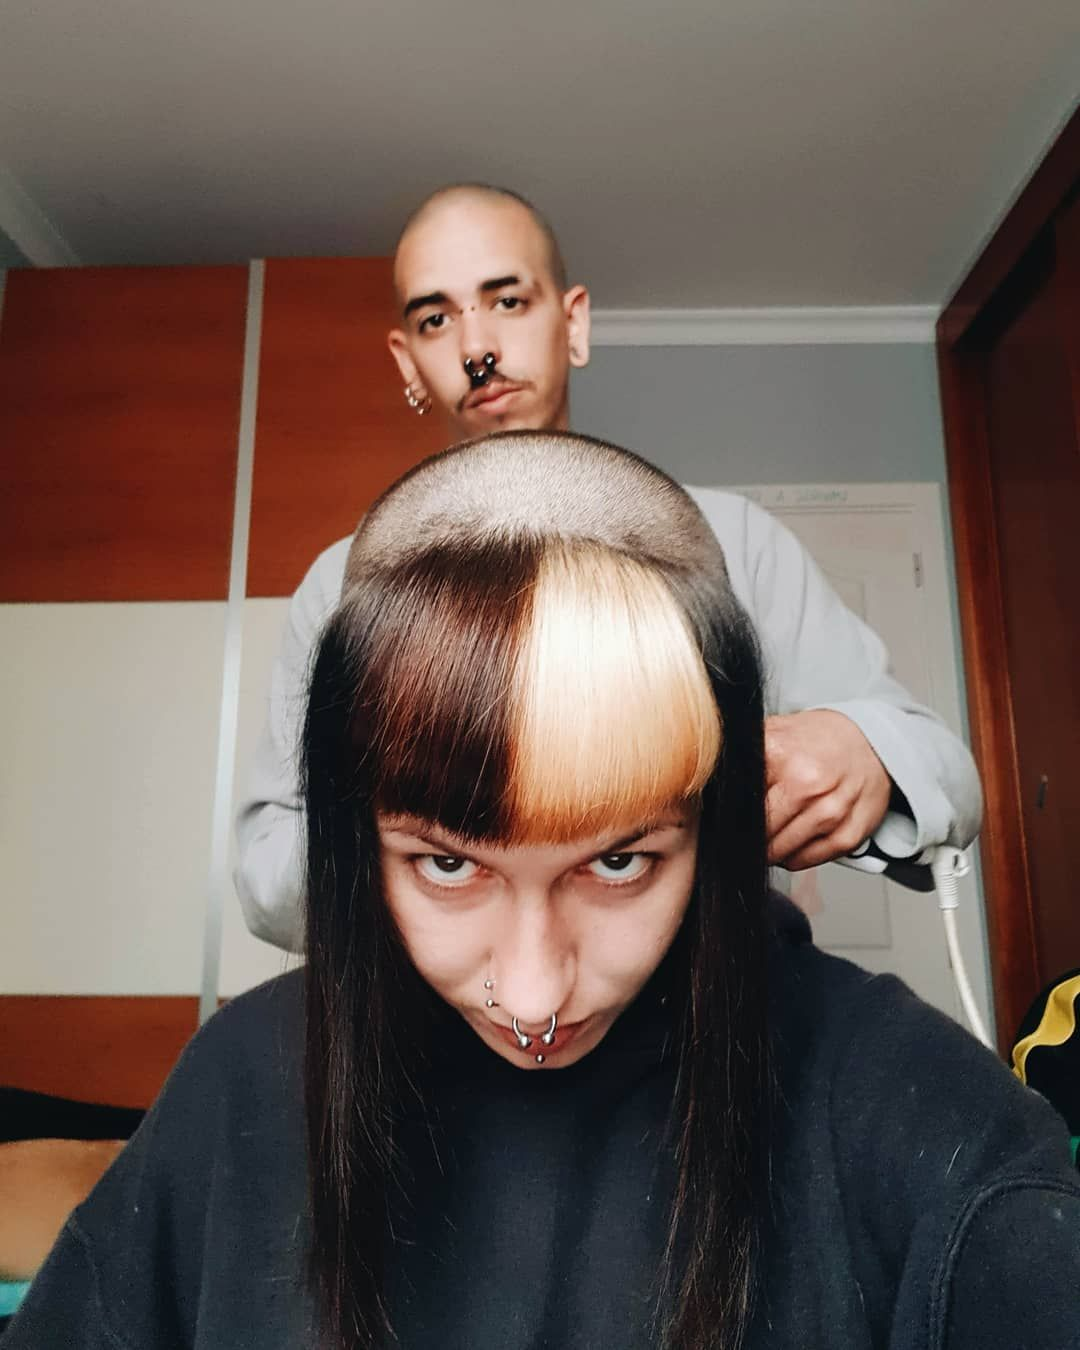 Getting head shaved